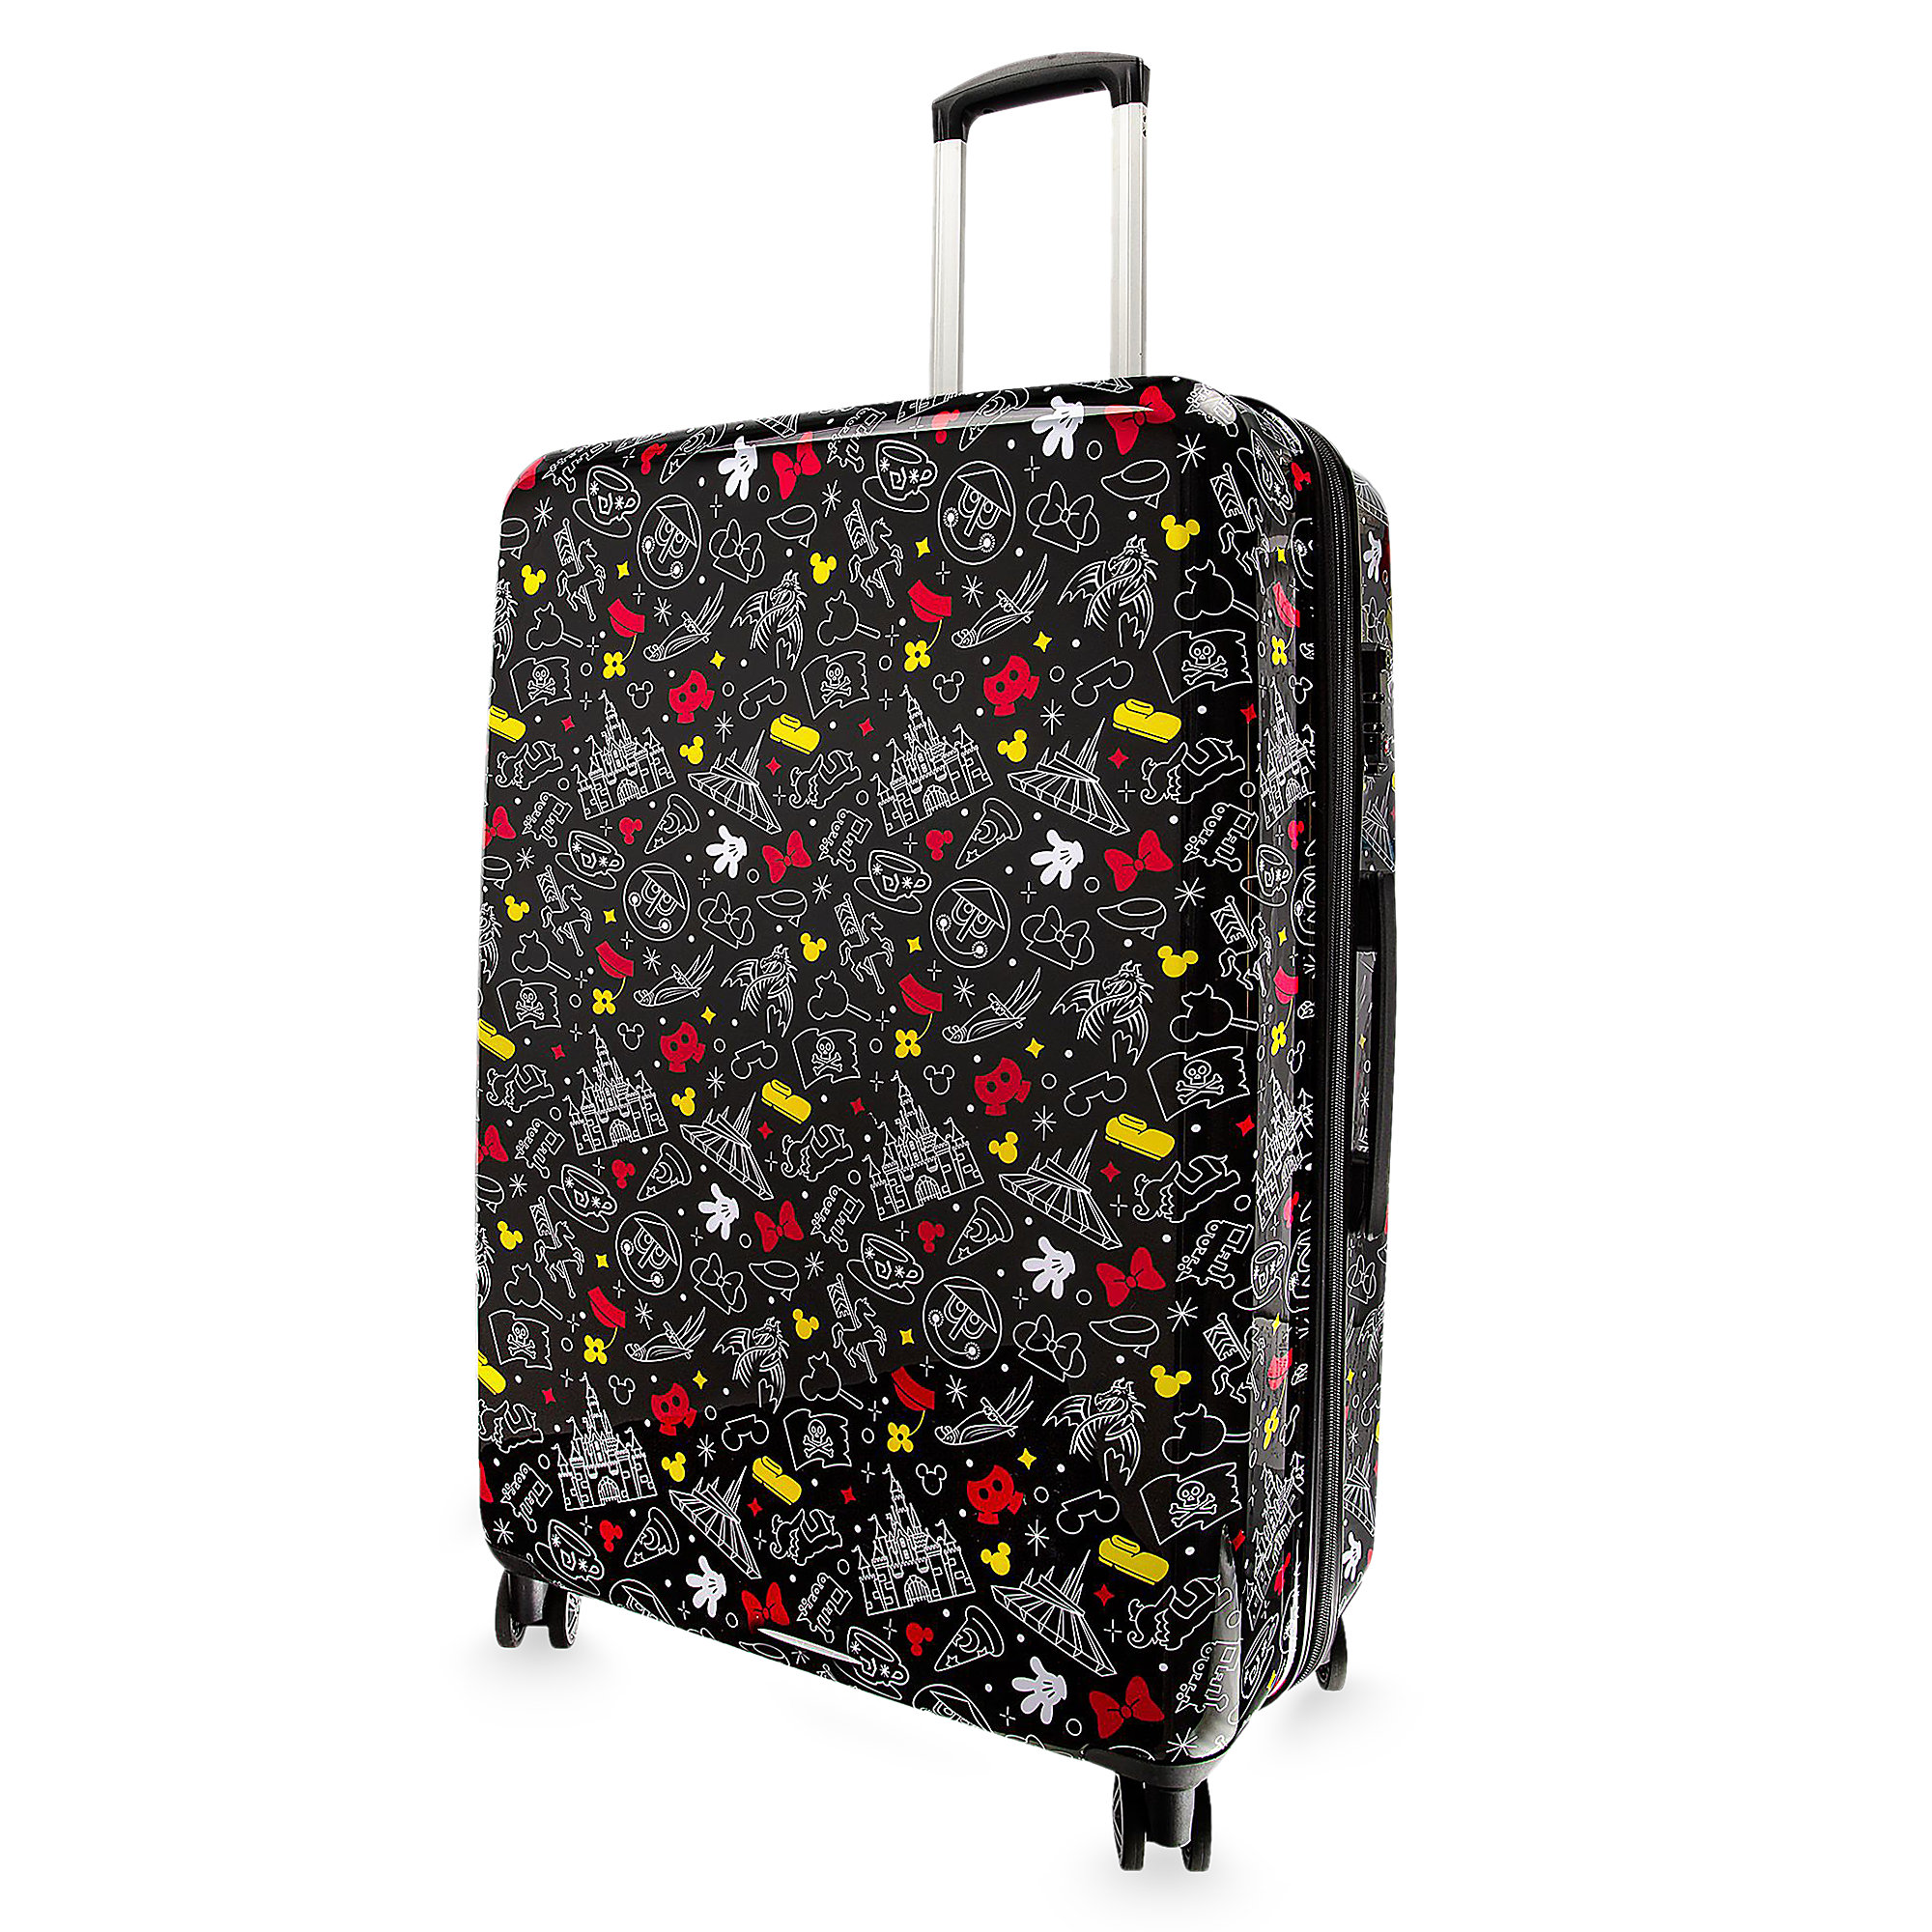 Disney Parks Rolling Luggage - Large - 28''